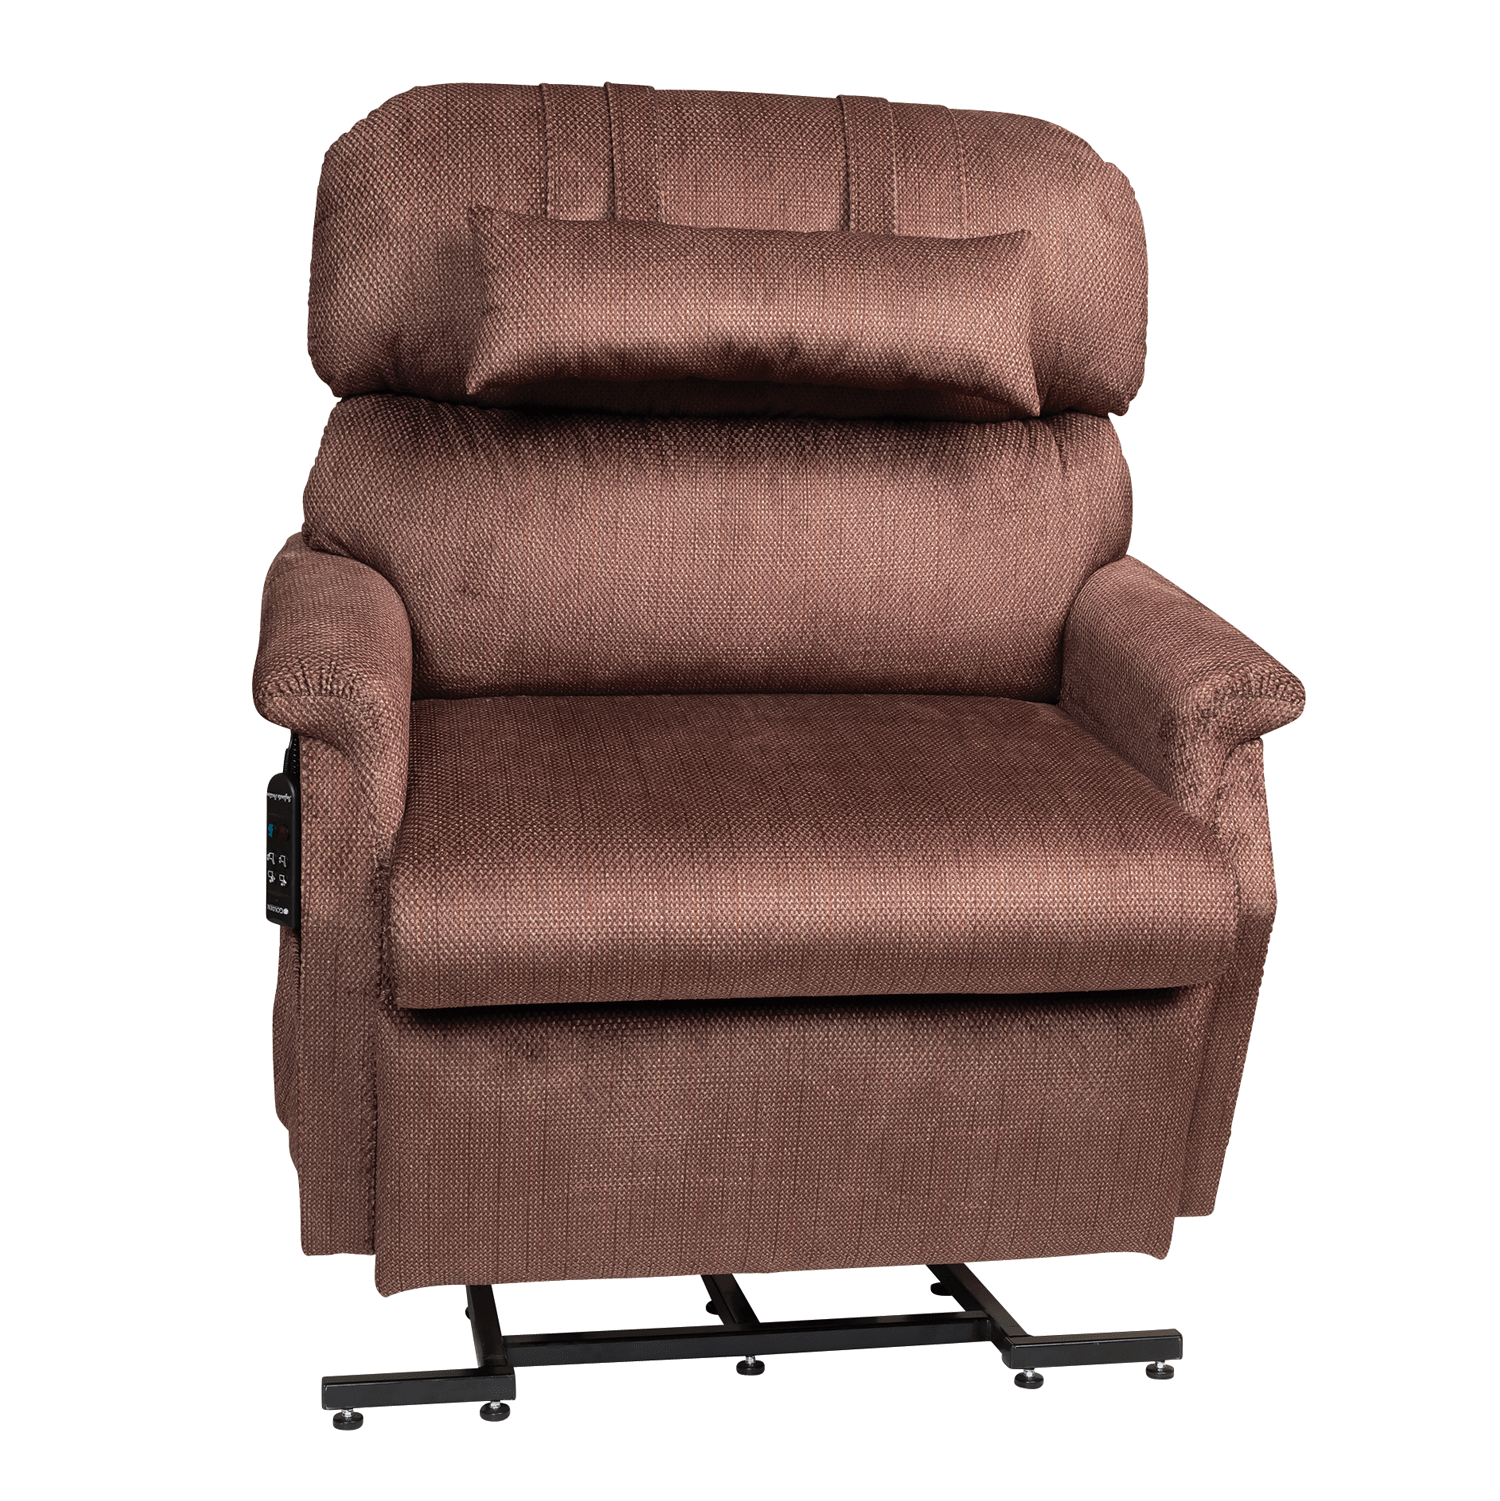 Lift Chair Rental Comforter Extra Wide Lift Chair Lincoln Mobility